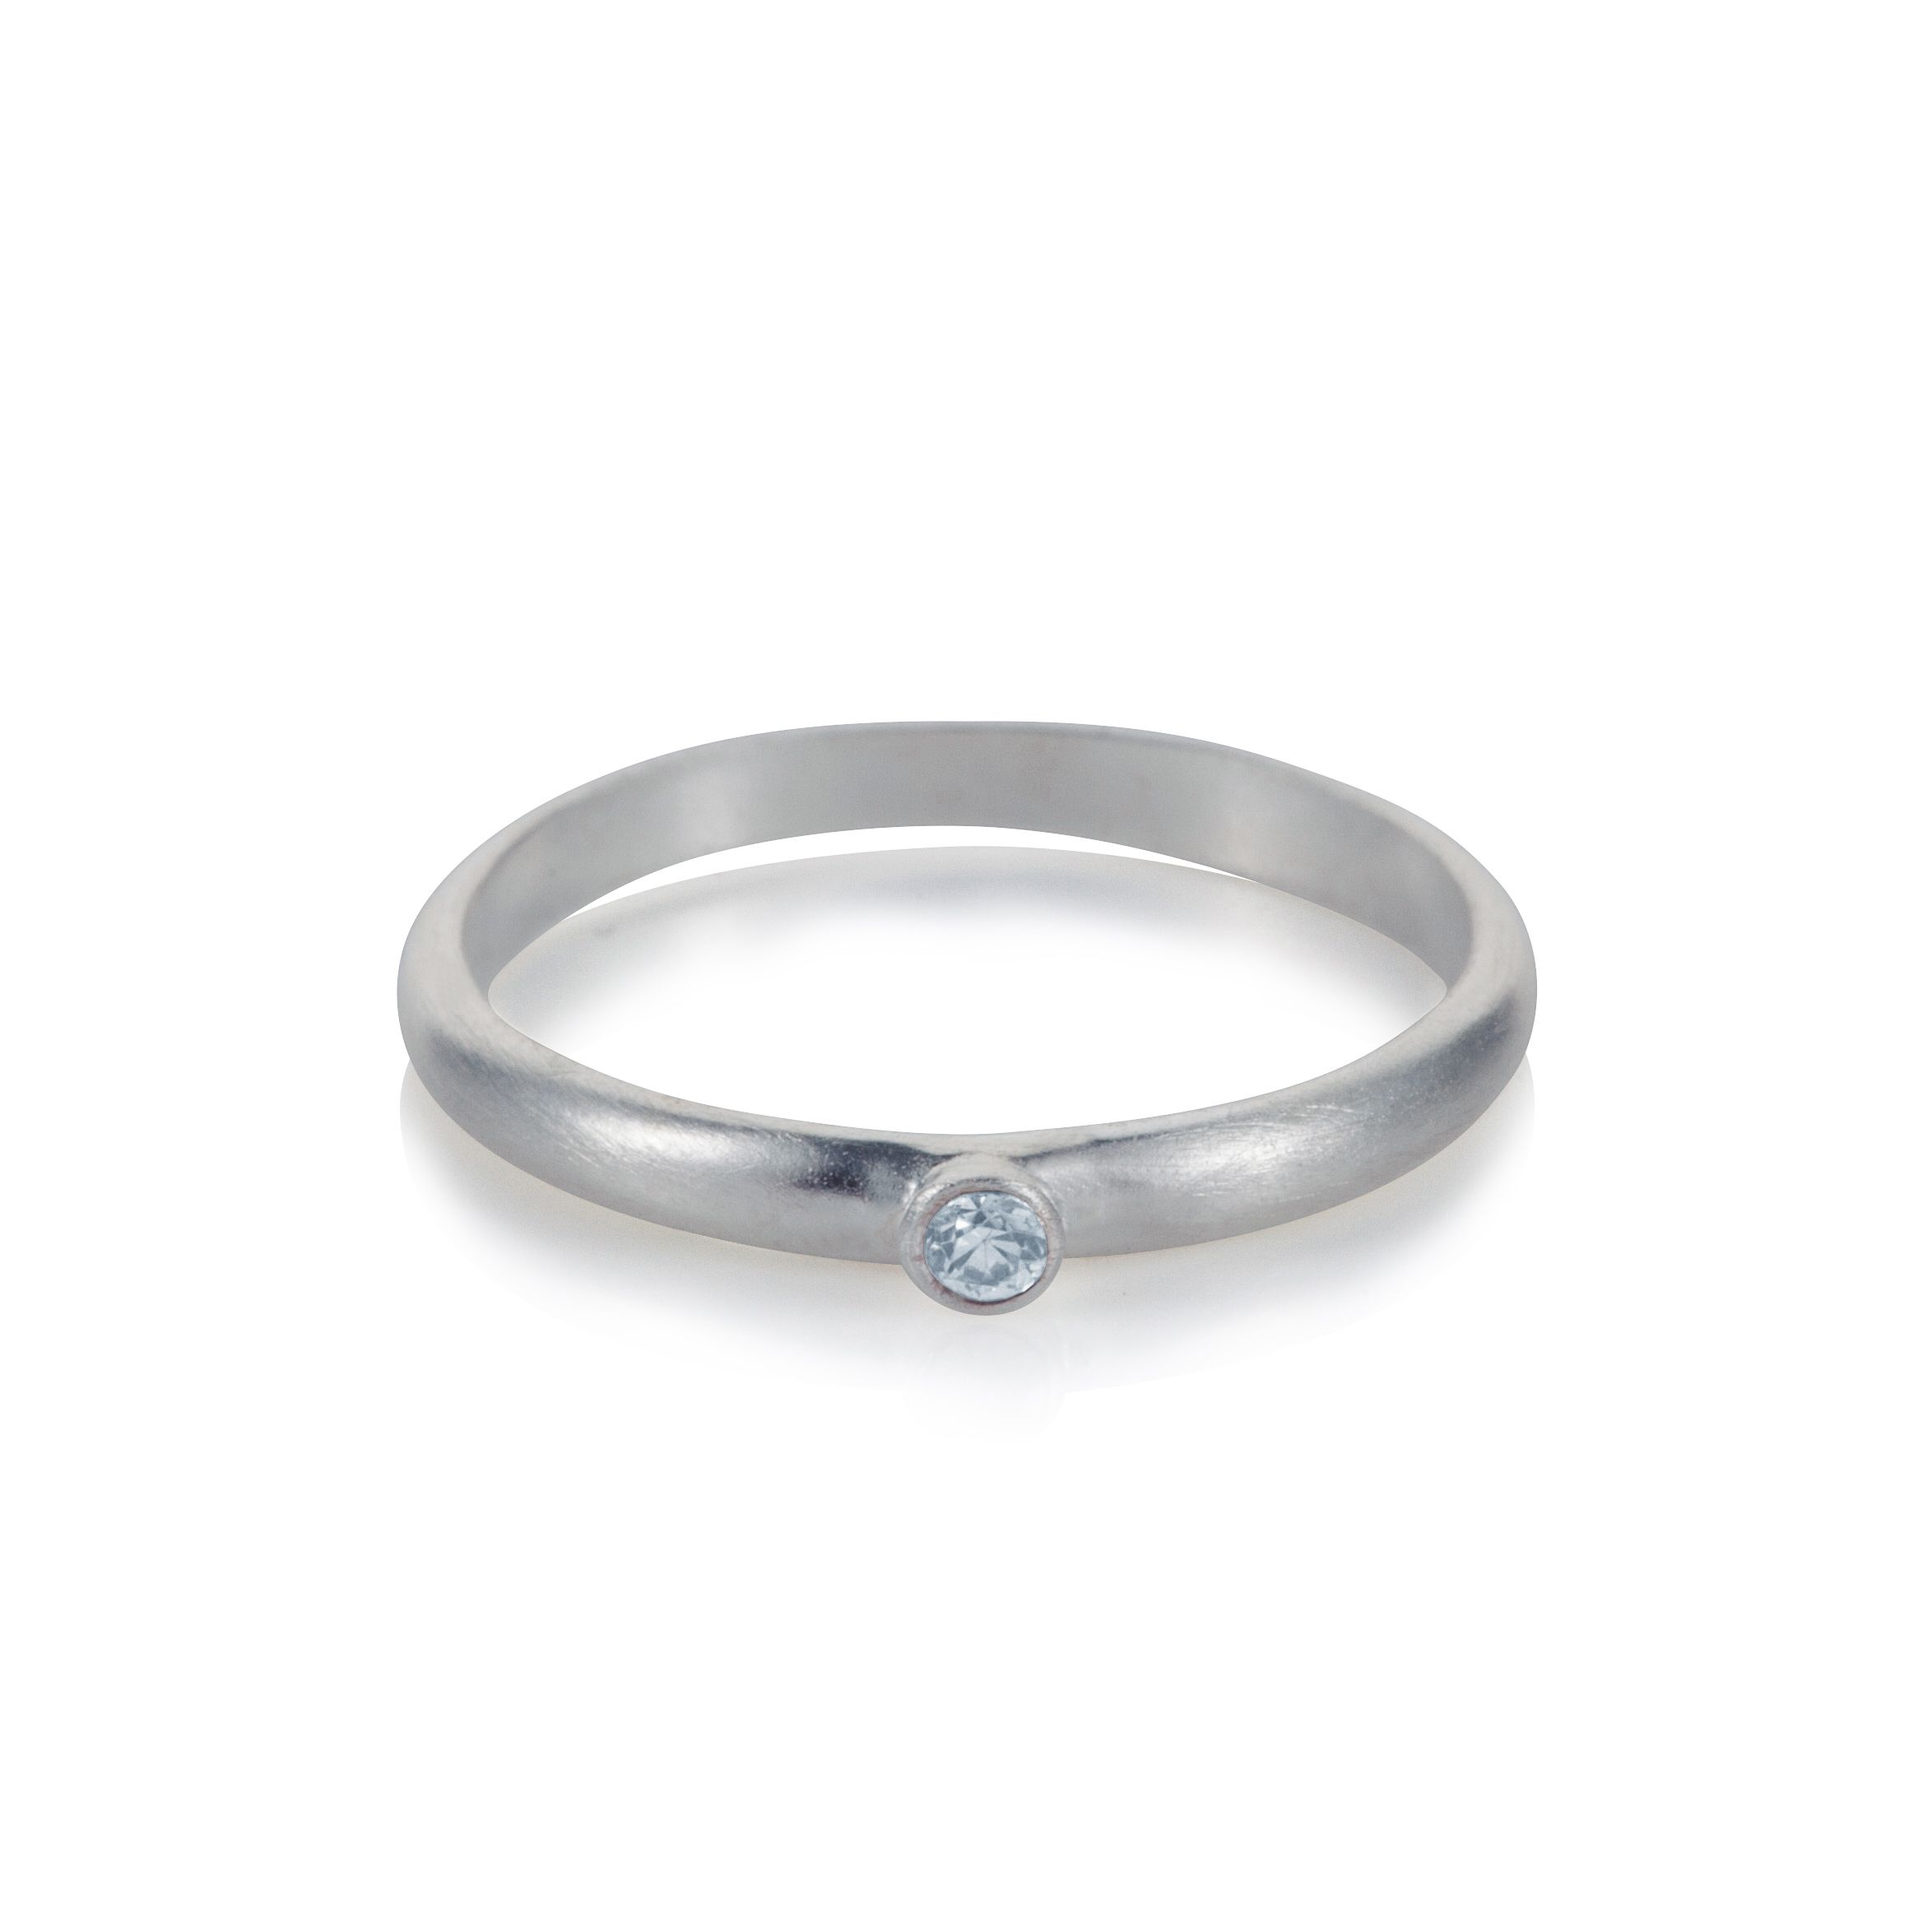 Sterling silver solitaire charm ring